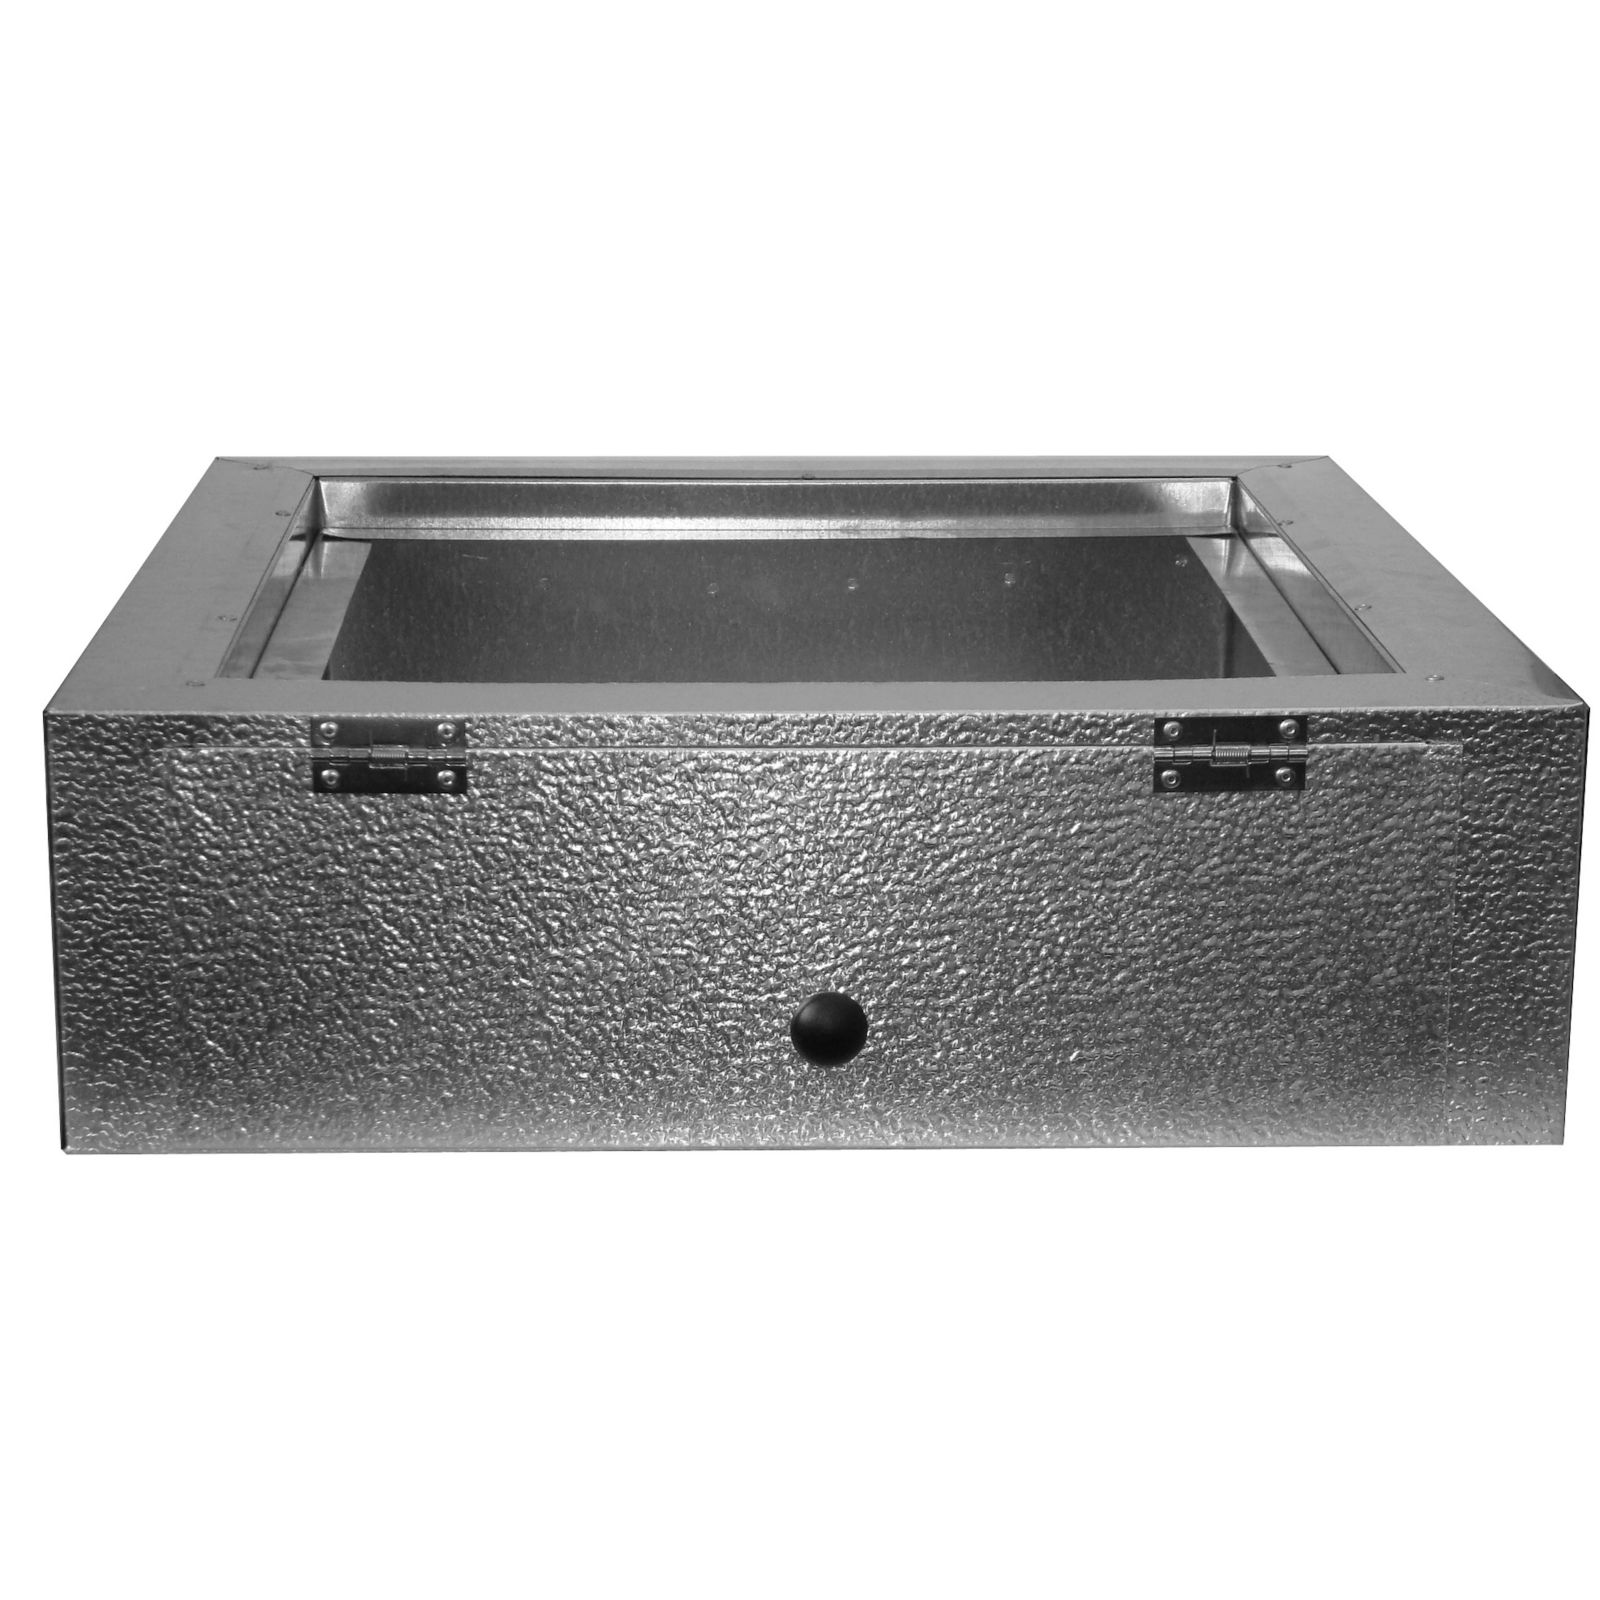 "The Metal Shop 433-506 - 5"" Filter Housing 21.5"" X 22"" For 20"" X 20"" Filter"